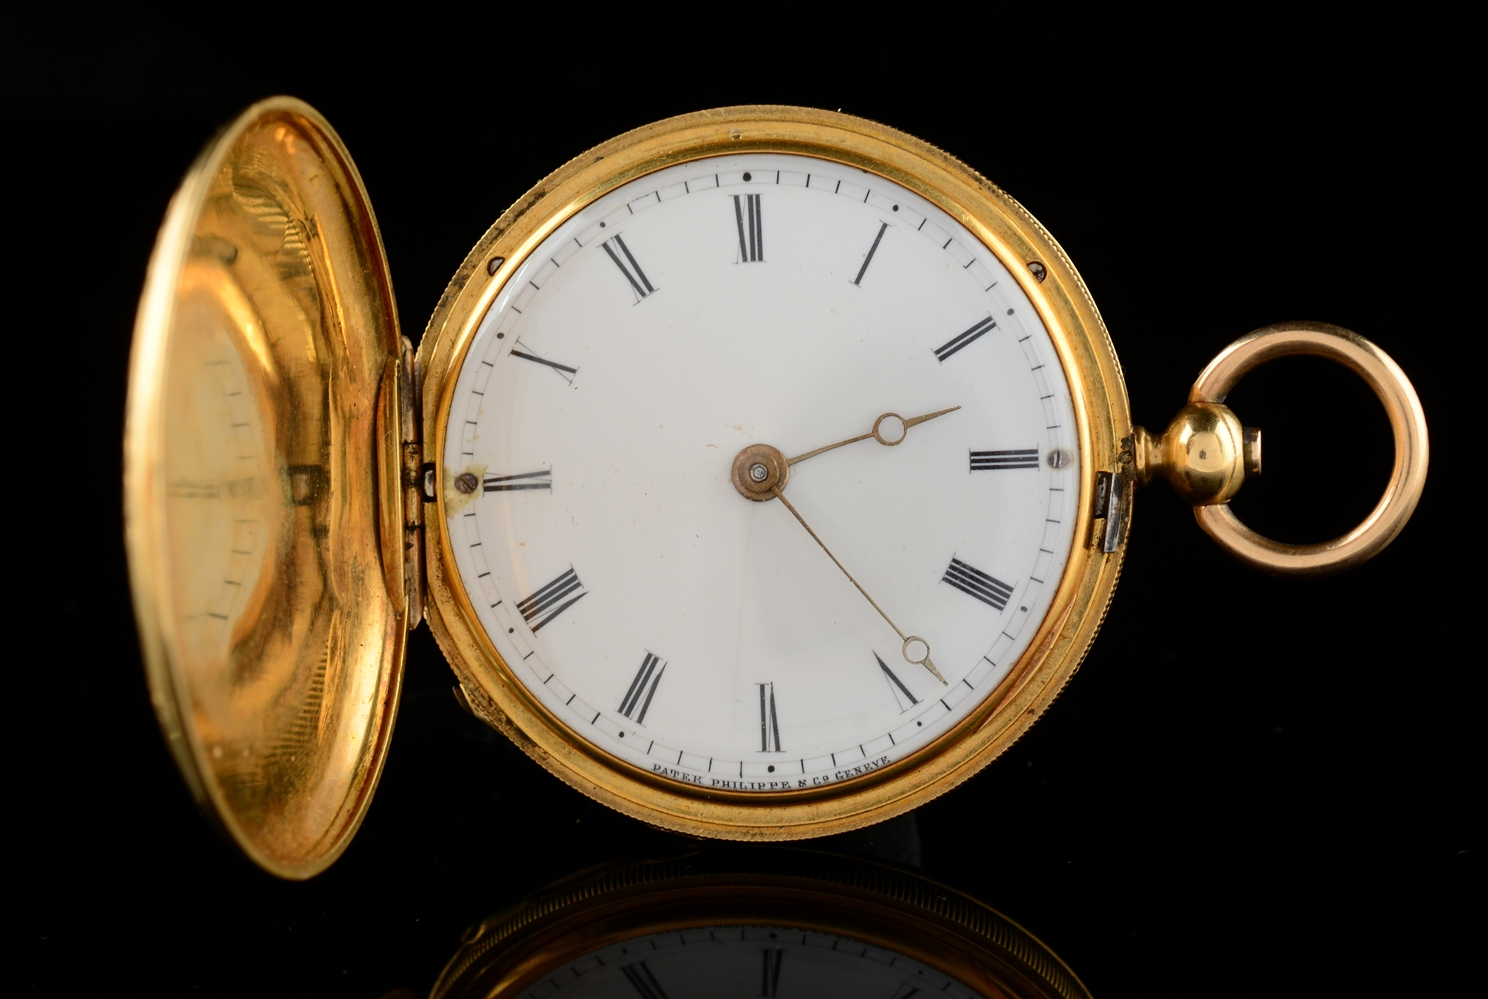 18K Gold Patek Philippe H/C Pocket Watch.